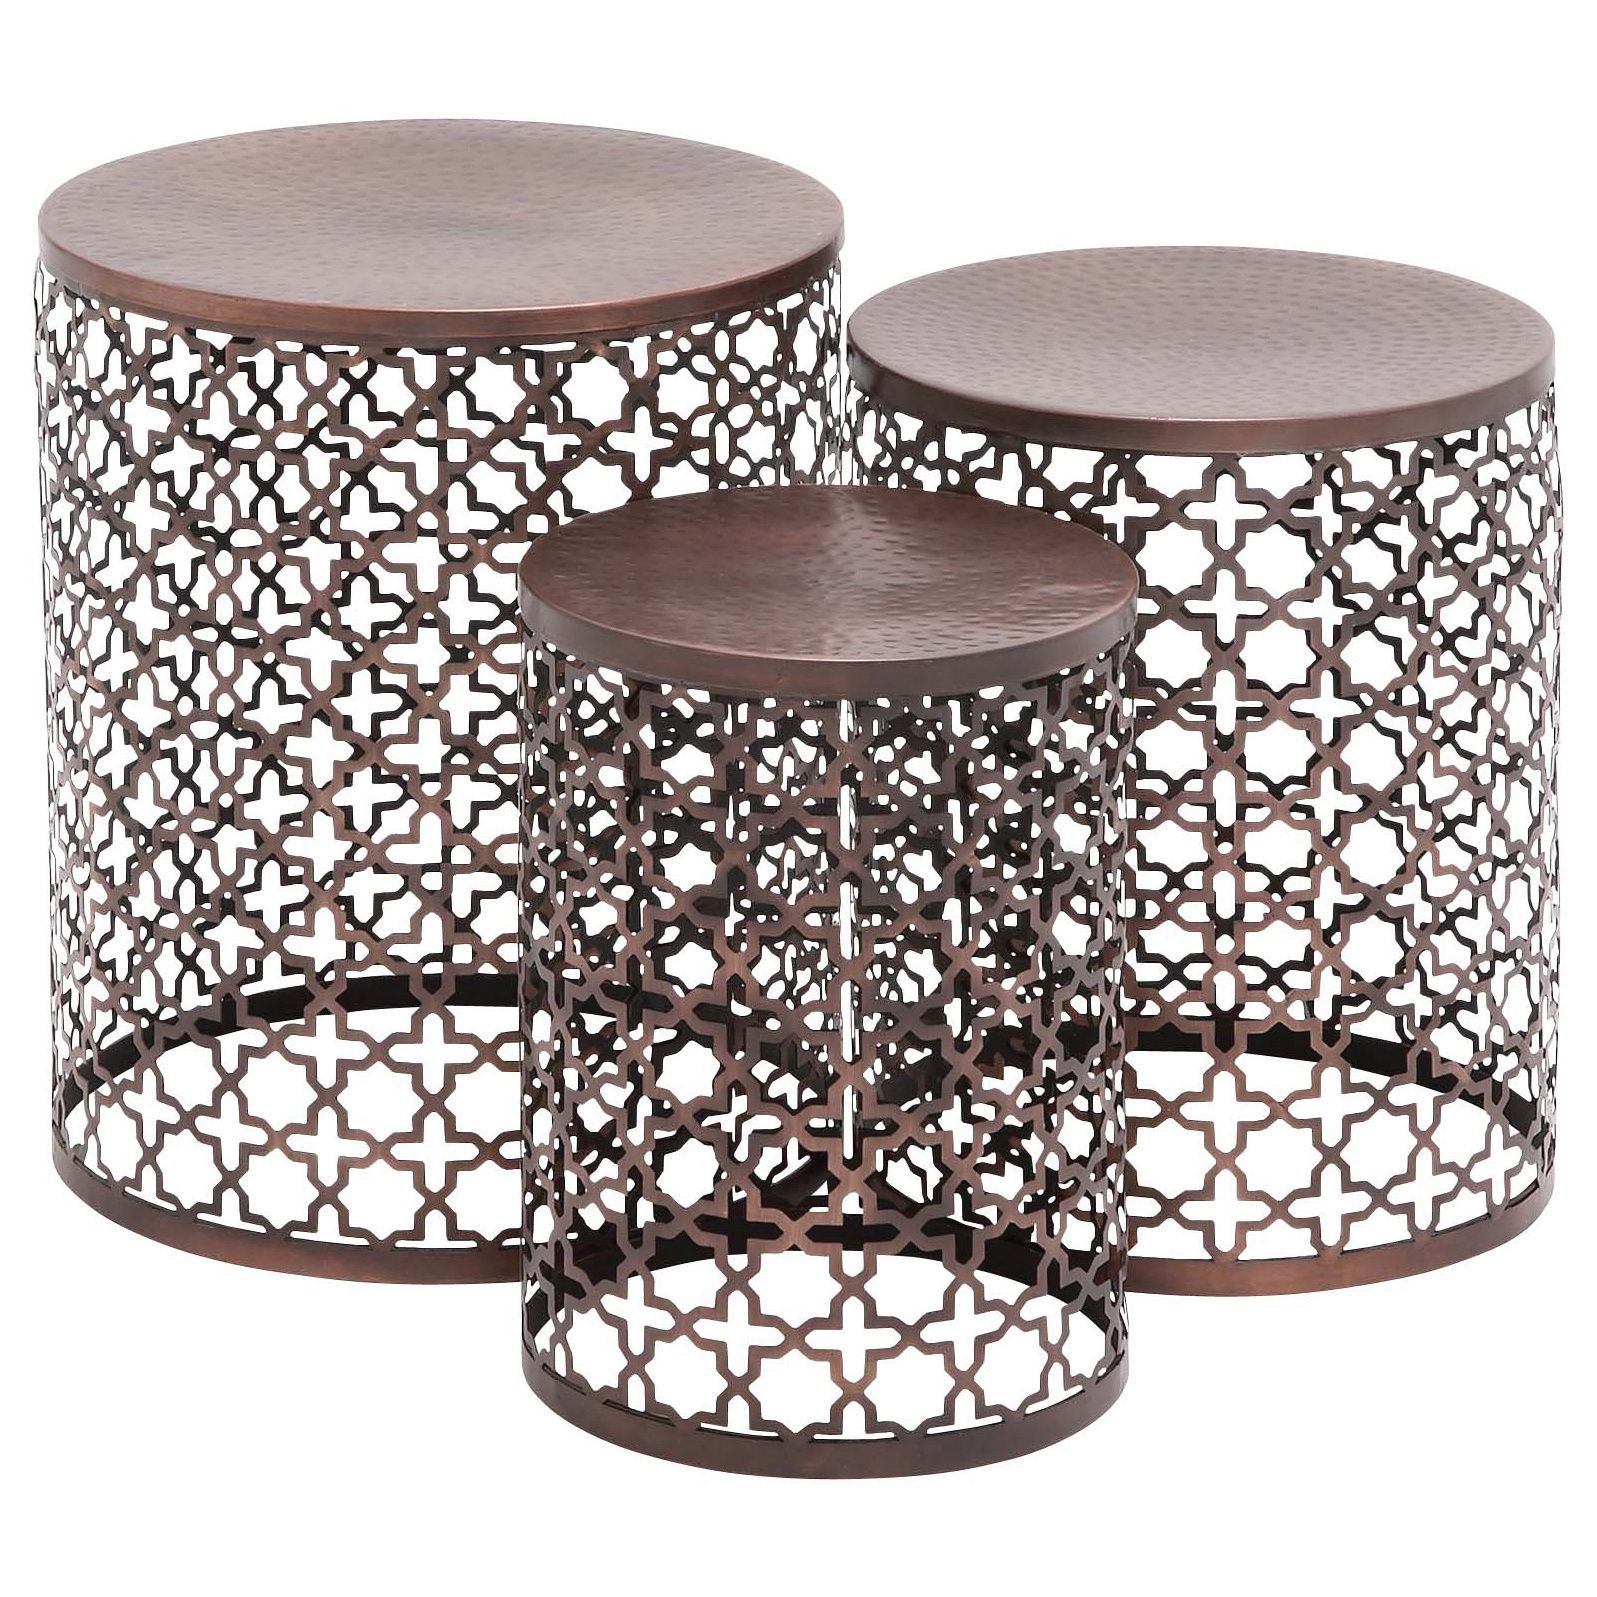 set contemporary and inch accent tables studio quatrefoil table bronze patio furniture antique green side kids rubber threshold trim grey bedside lights ikea vinyl lace tablecloth